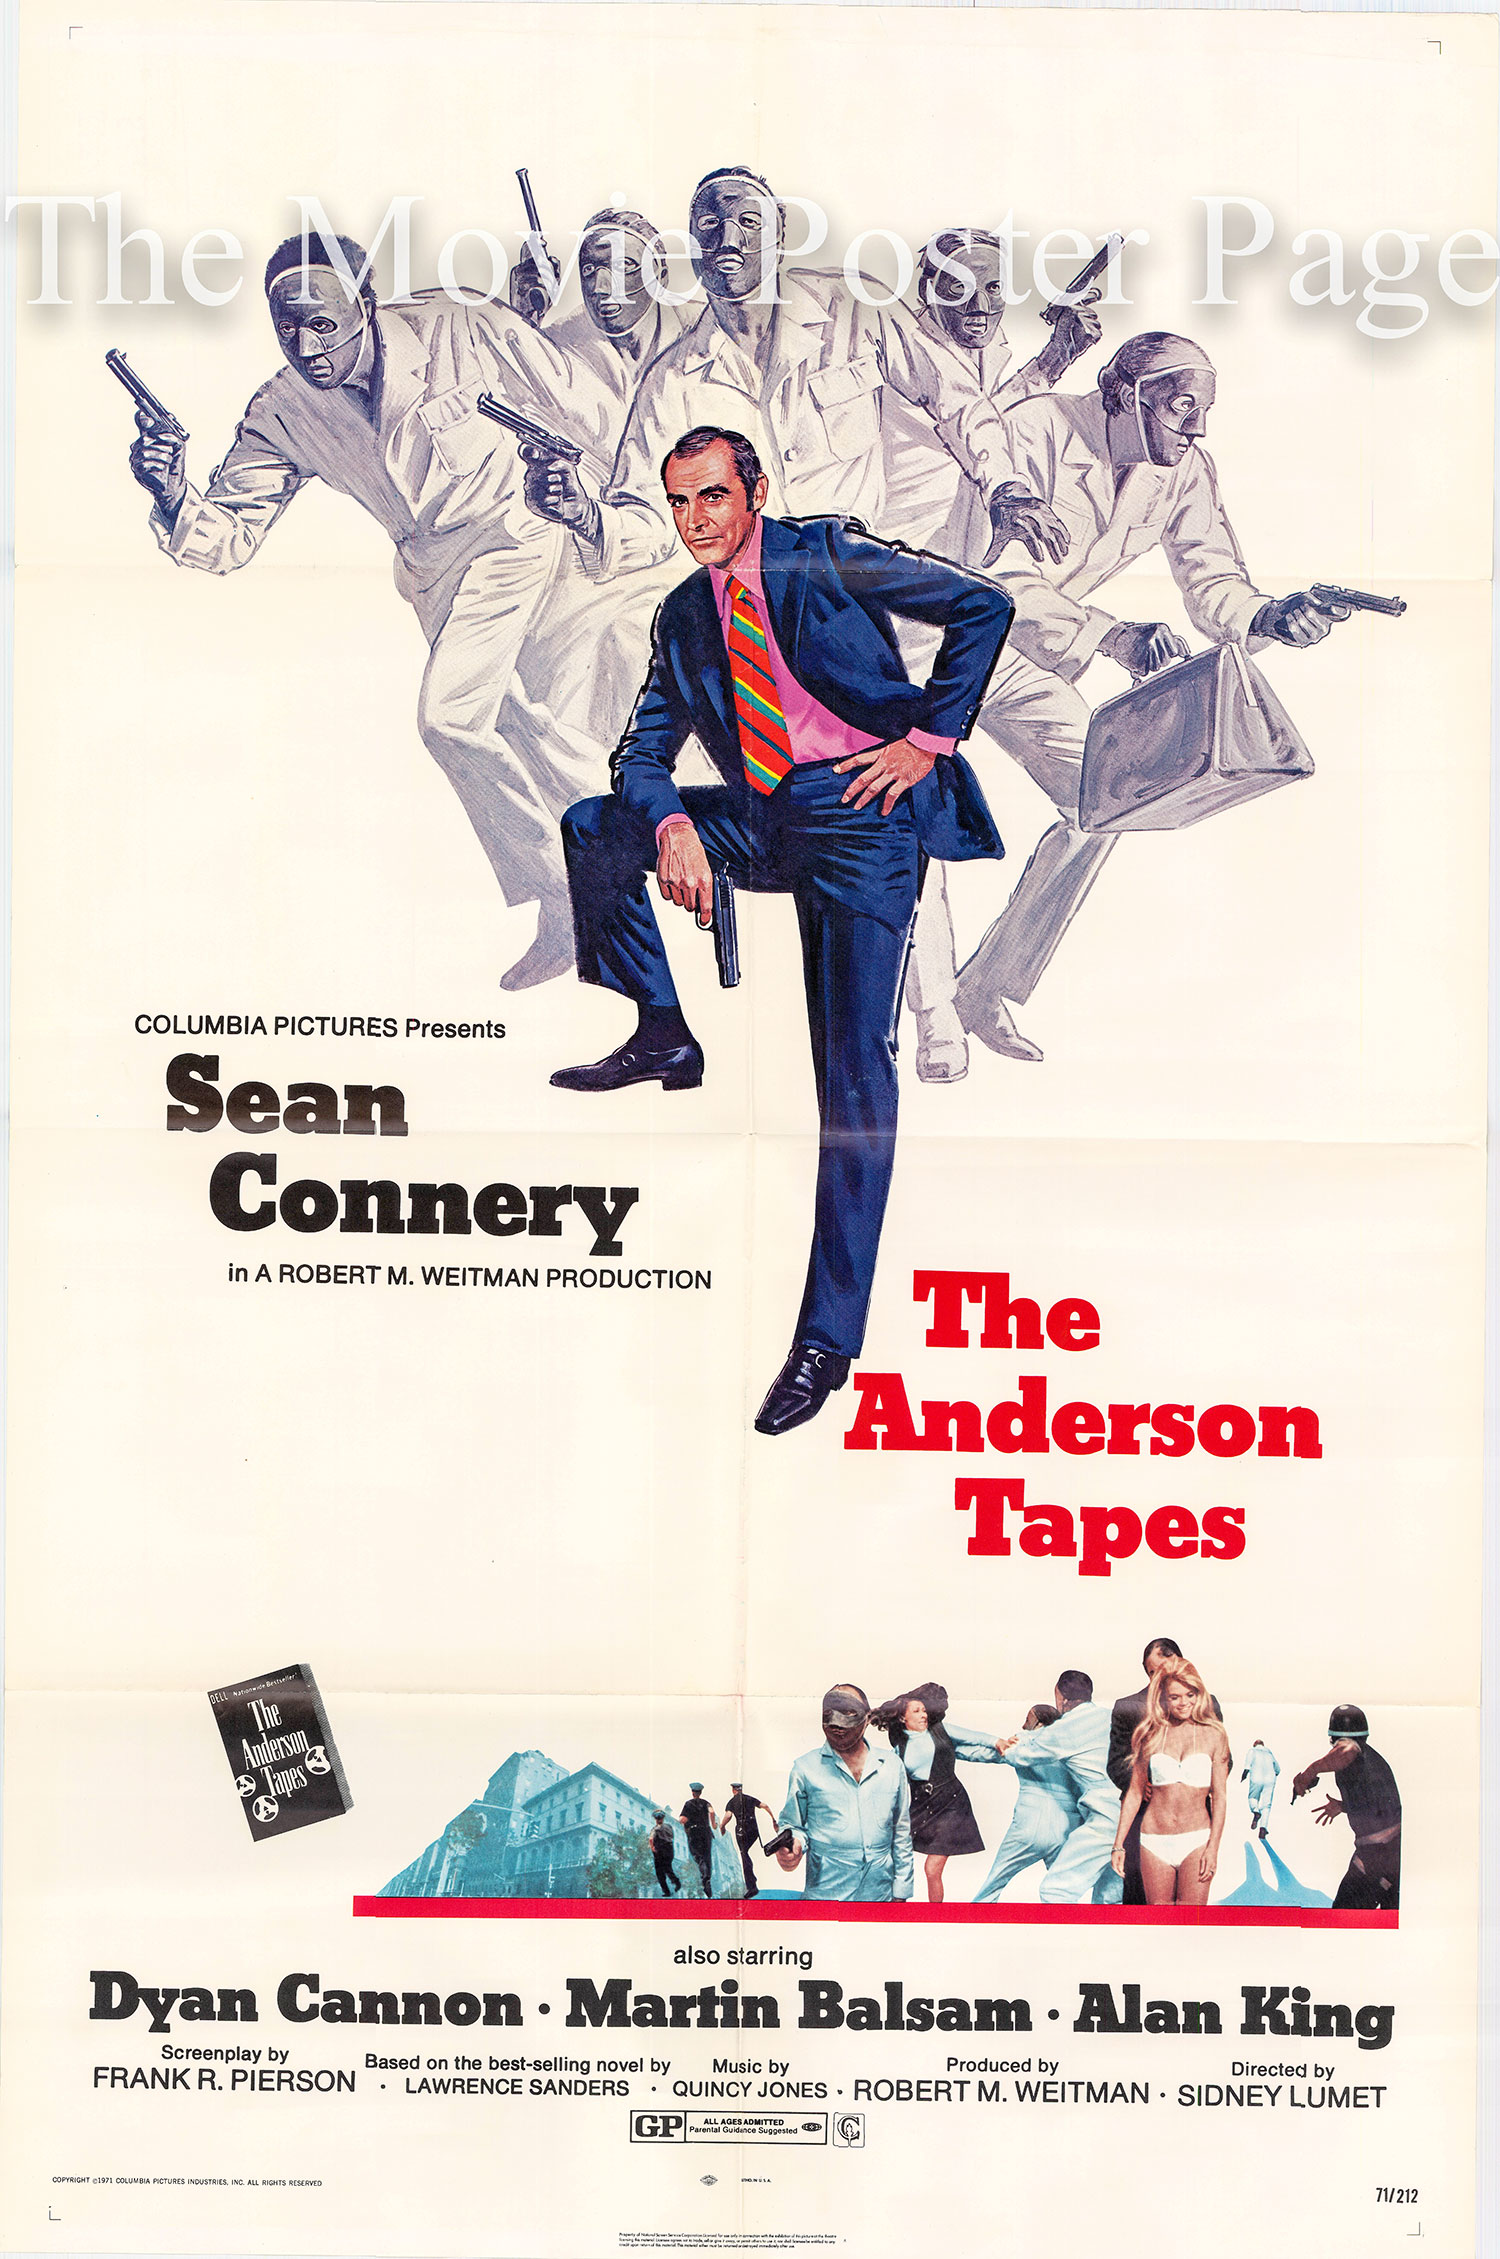 Pictured is a US one-sheet promotional poster for the 1971 Sidney Lumet film The Anderson Tapes starring Sean Connery.